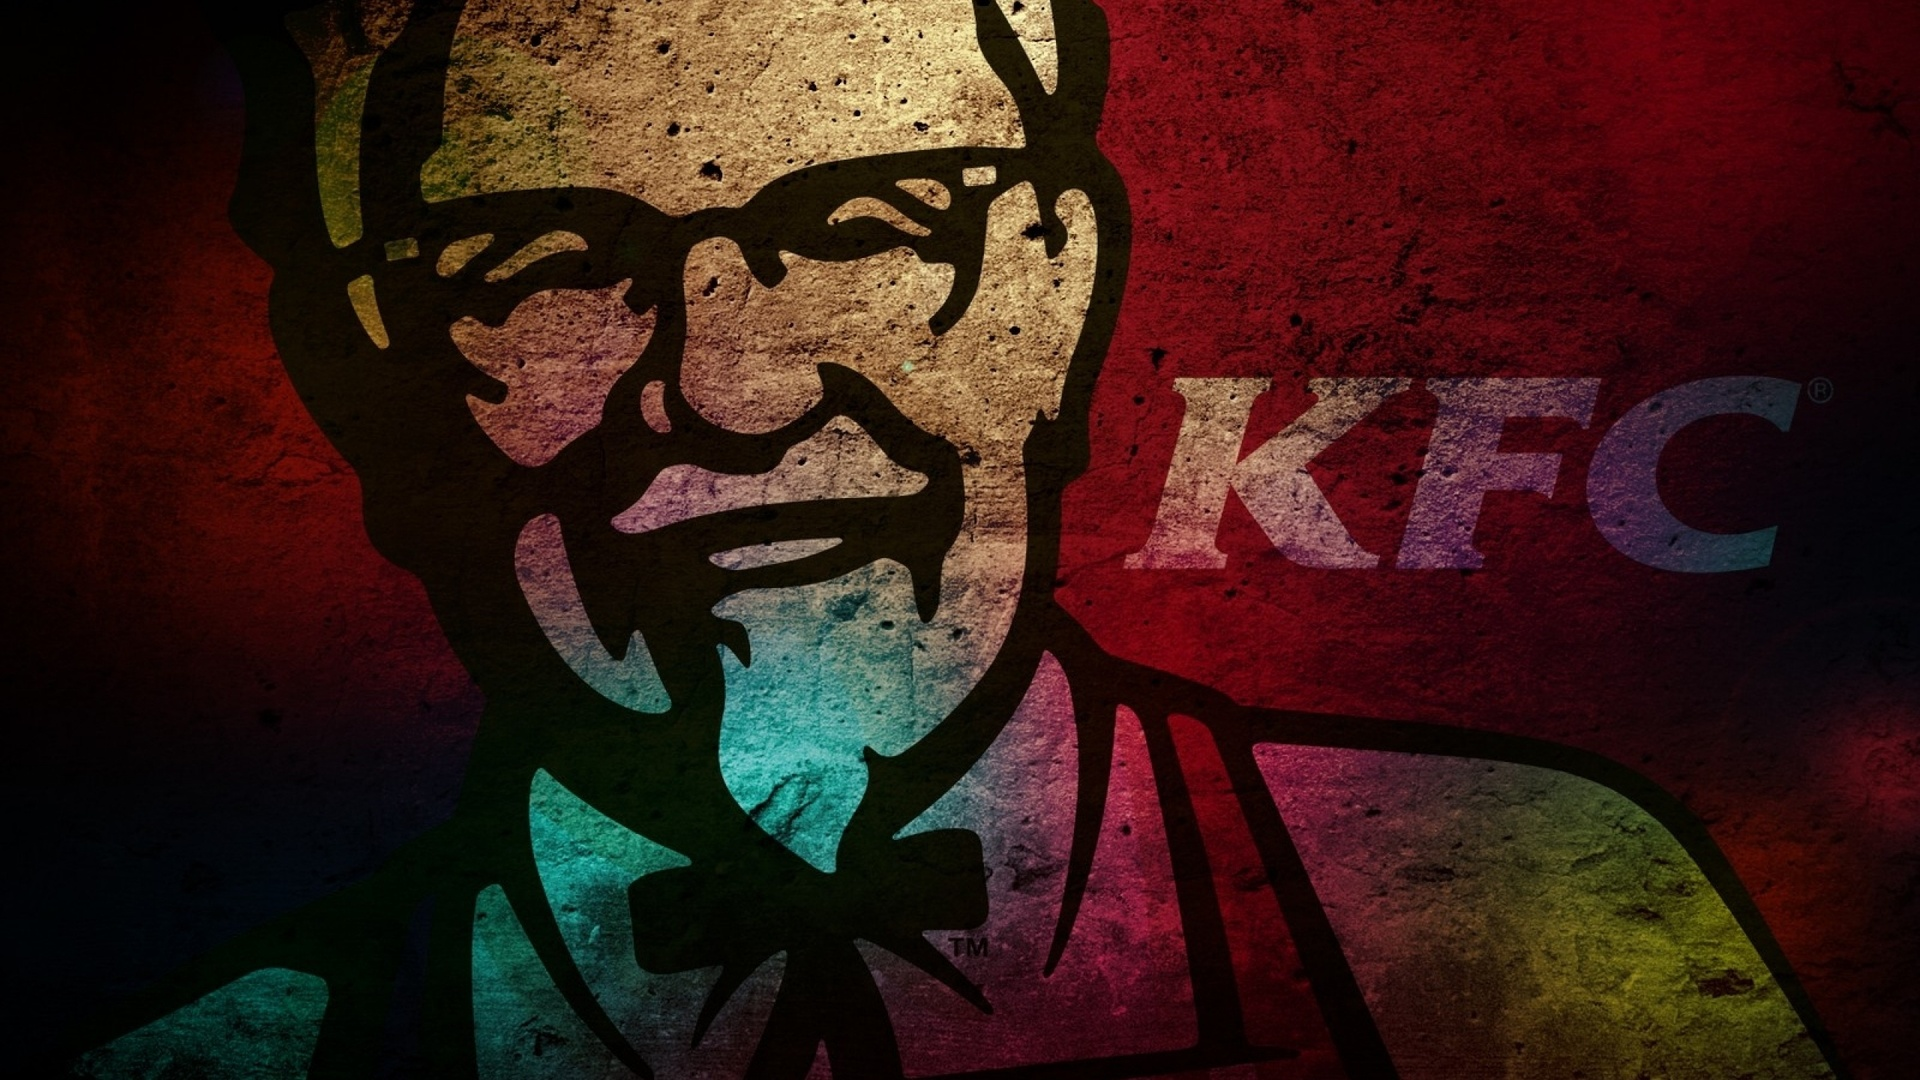 kfc background Background mcdonalds in malaysia  (qsr) in malaysia, compared to fast food service restaurants such as kentucky fried chicken (kfc), burger king,.